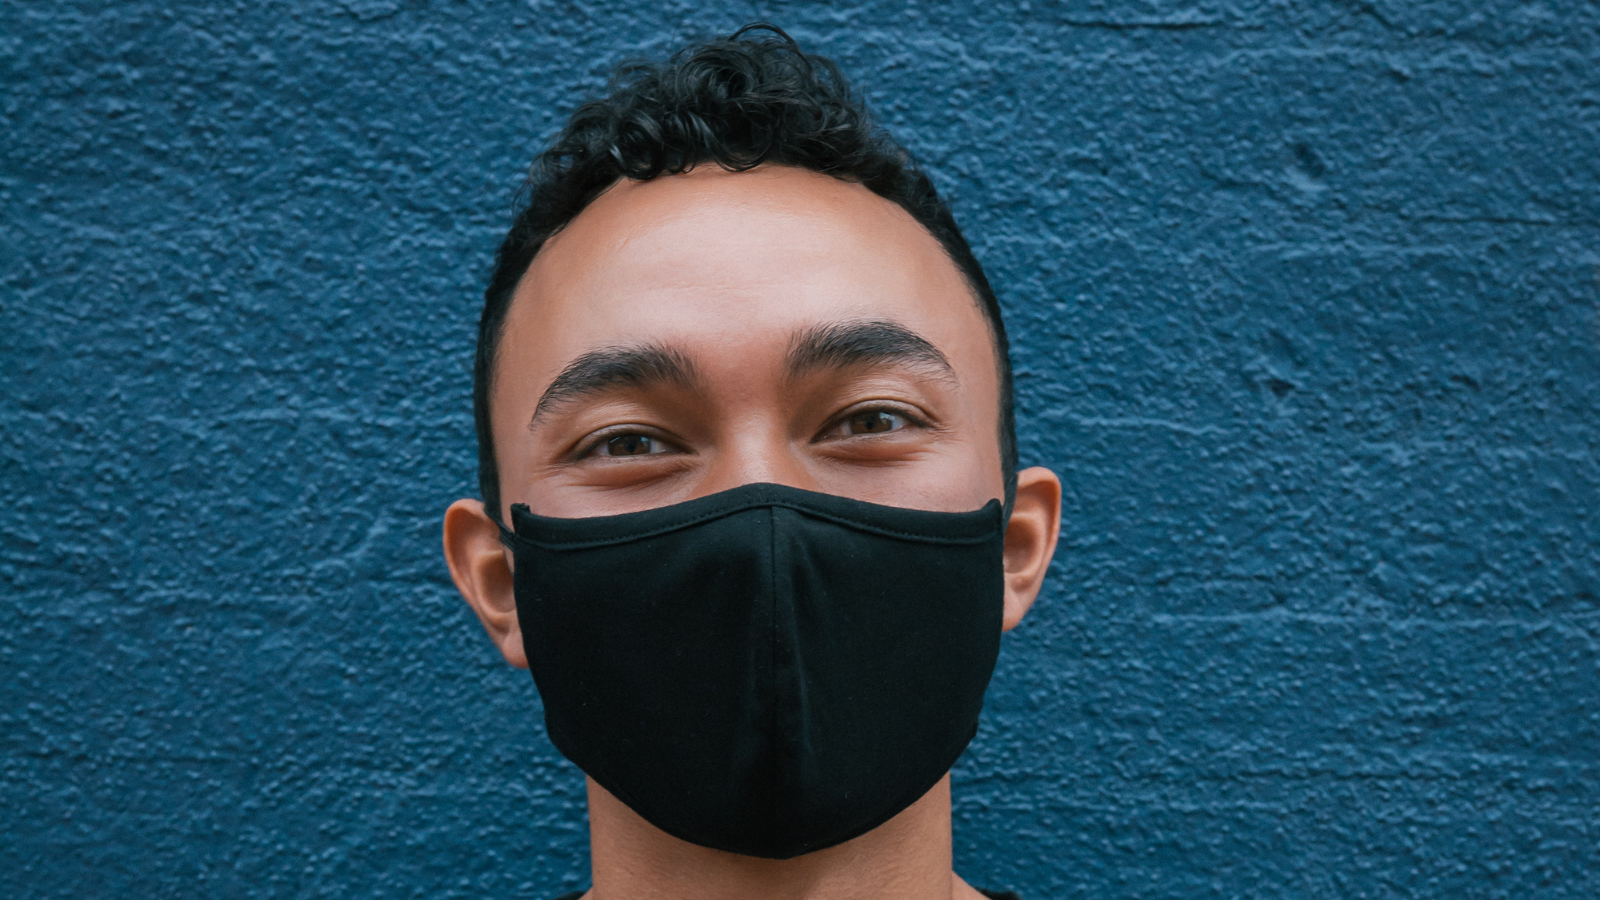 Elastic-free Face Masks May Help With Allergies Feature Image